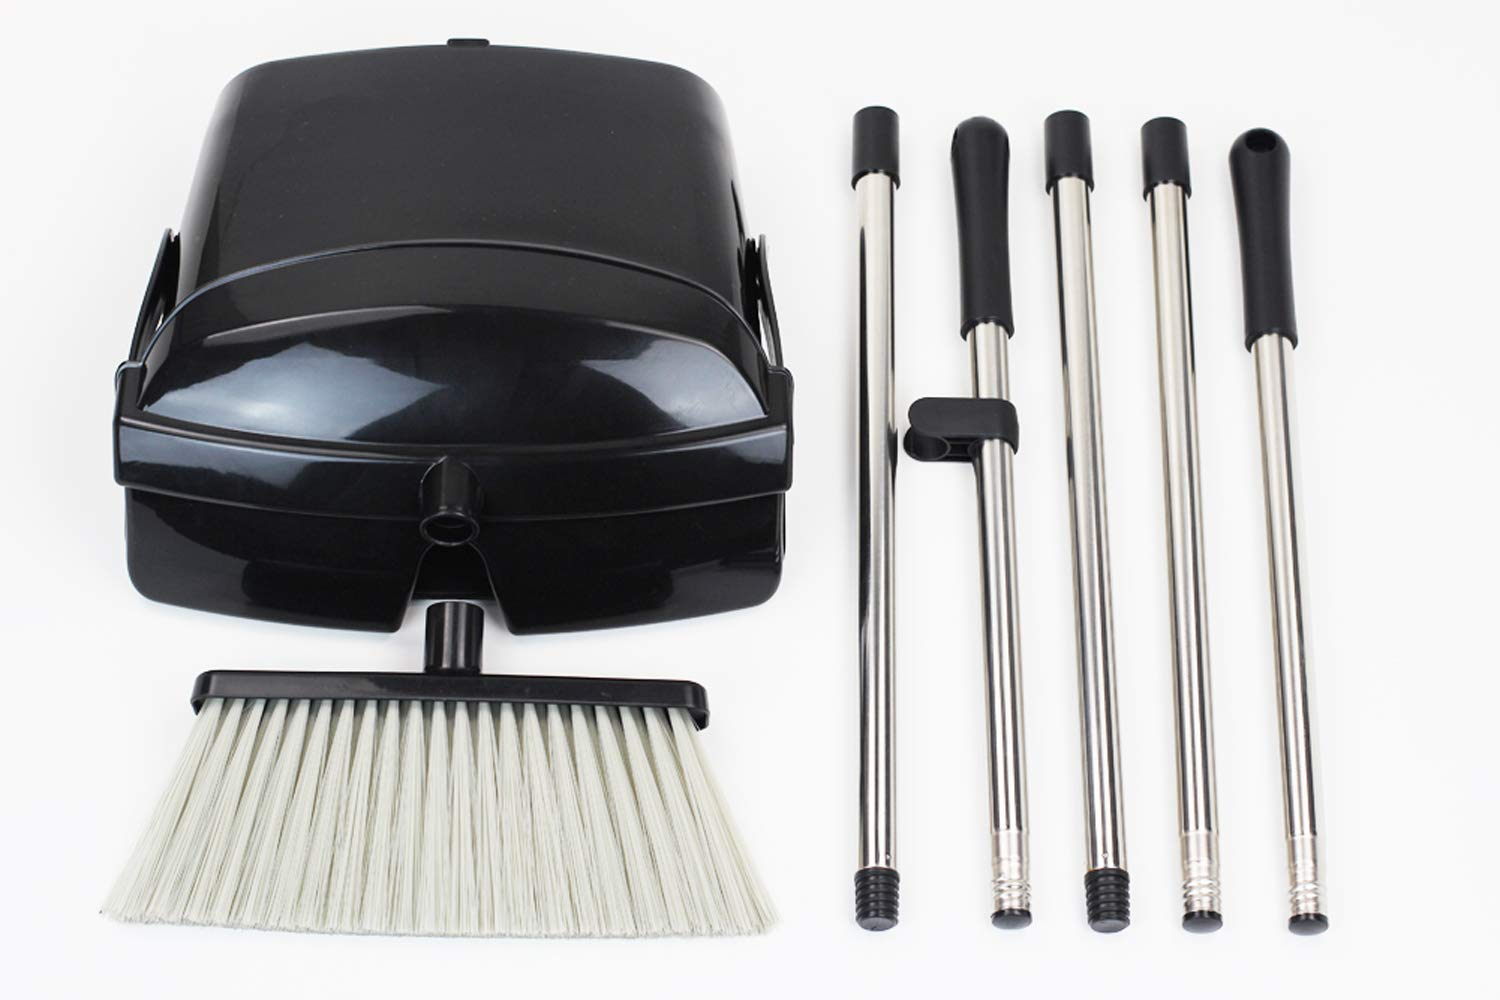 Broom and Dustpan Set, Commercial Long Handle Sweep Set and Lobby Broom,Upright Grips Sweep Set with Broom for Home, Kitchen, Room, Office and Lobby Floor Dust Pan & Broom Combo, Black by Laixiu (Image #1)